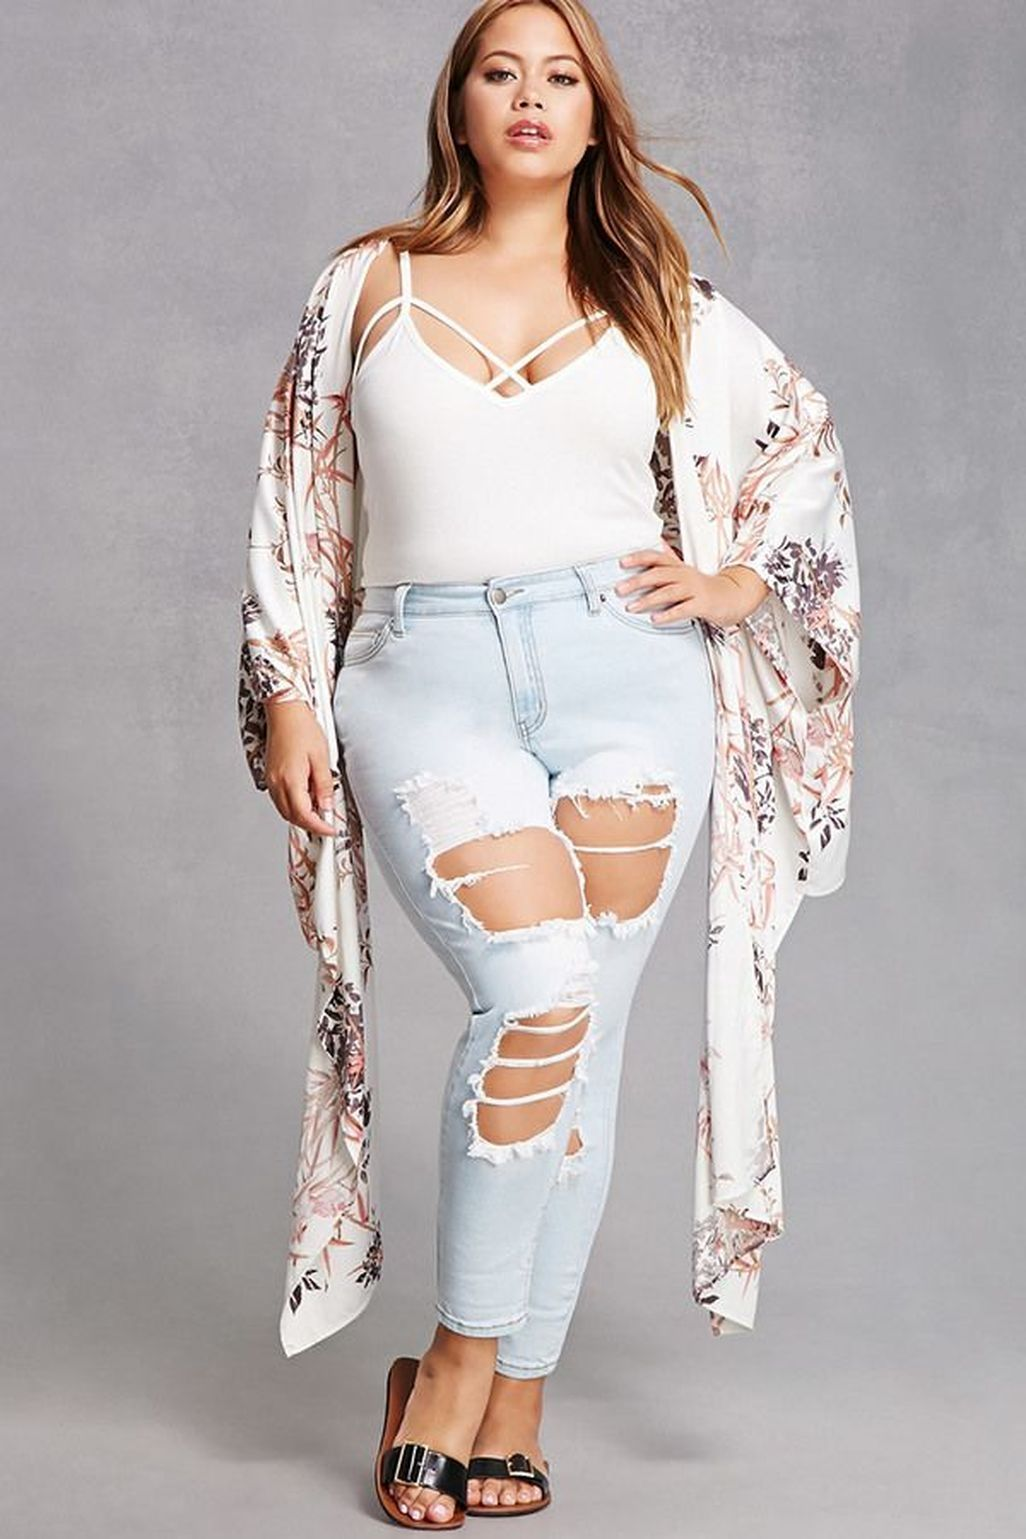 38++ Plus size summer outfits ideas information